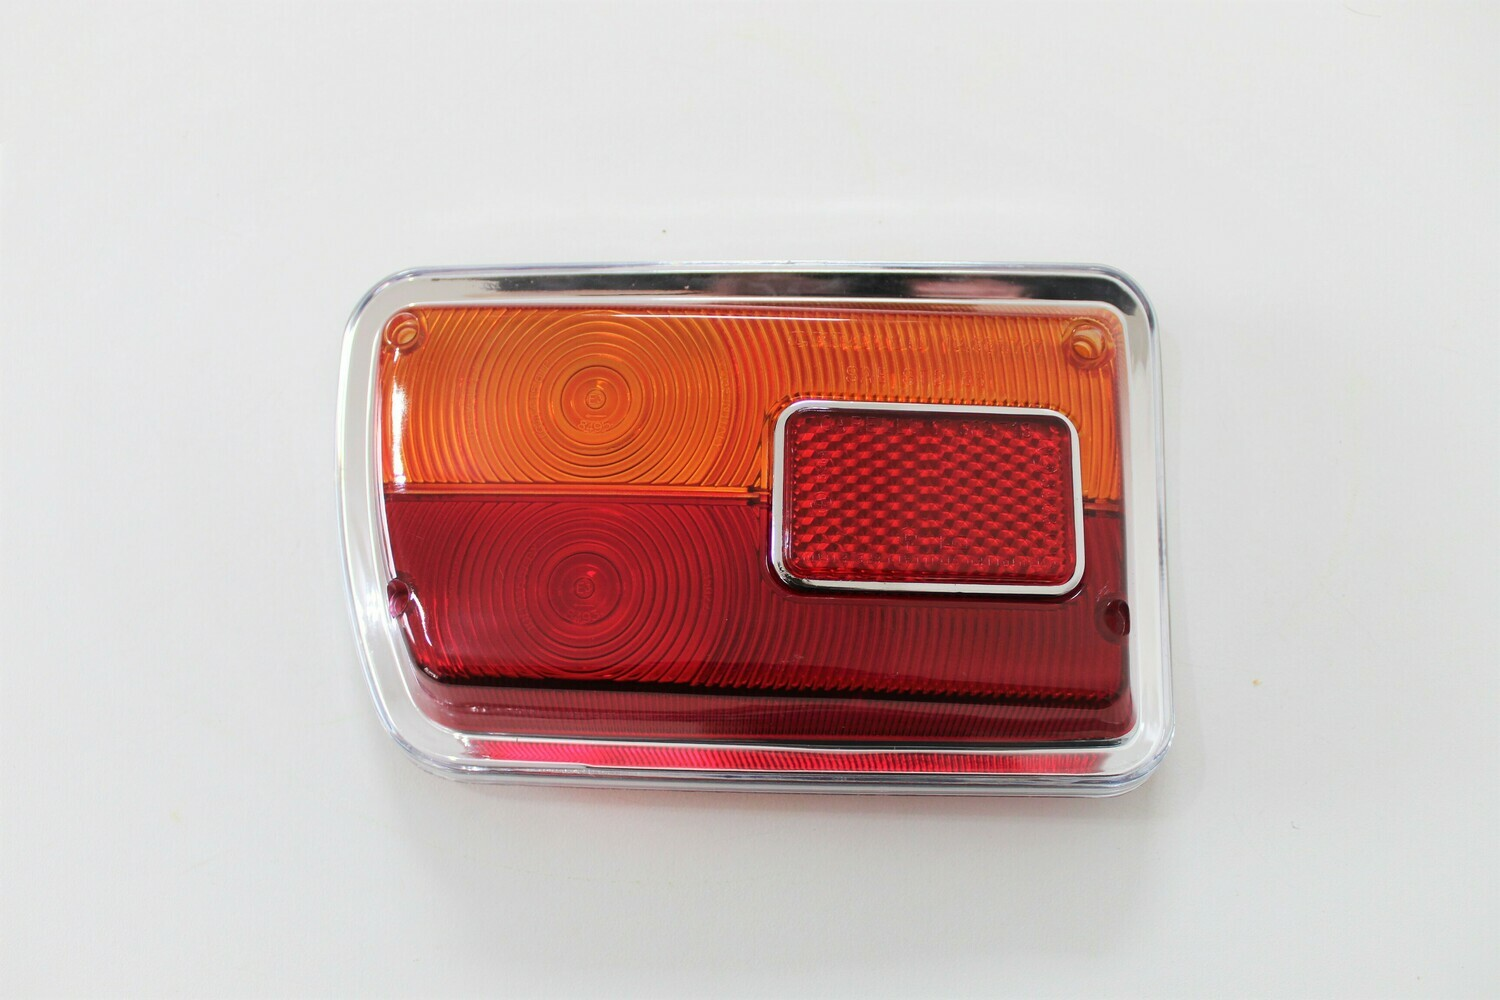 Carello 1750 GTV MK2/GT Juniors/Sprint GTV Rear Light Lens, Left Side